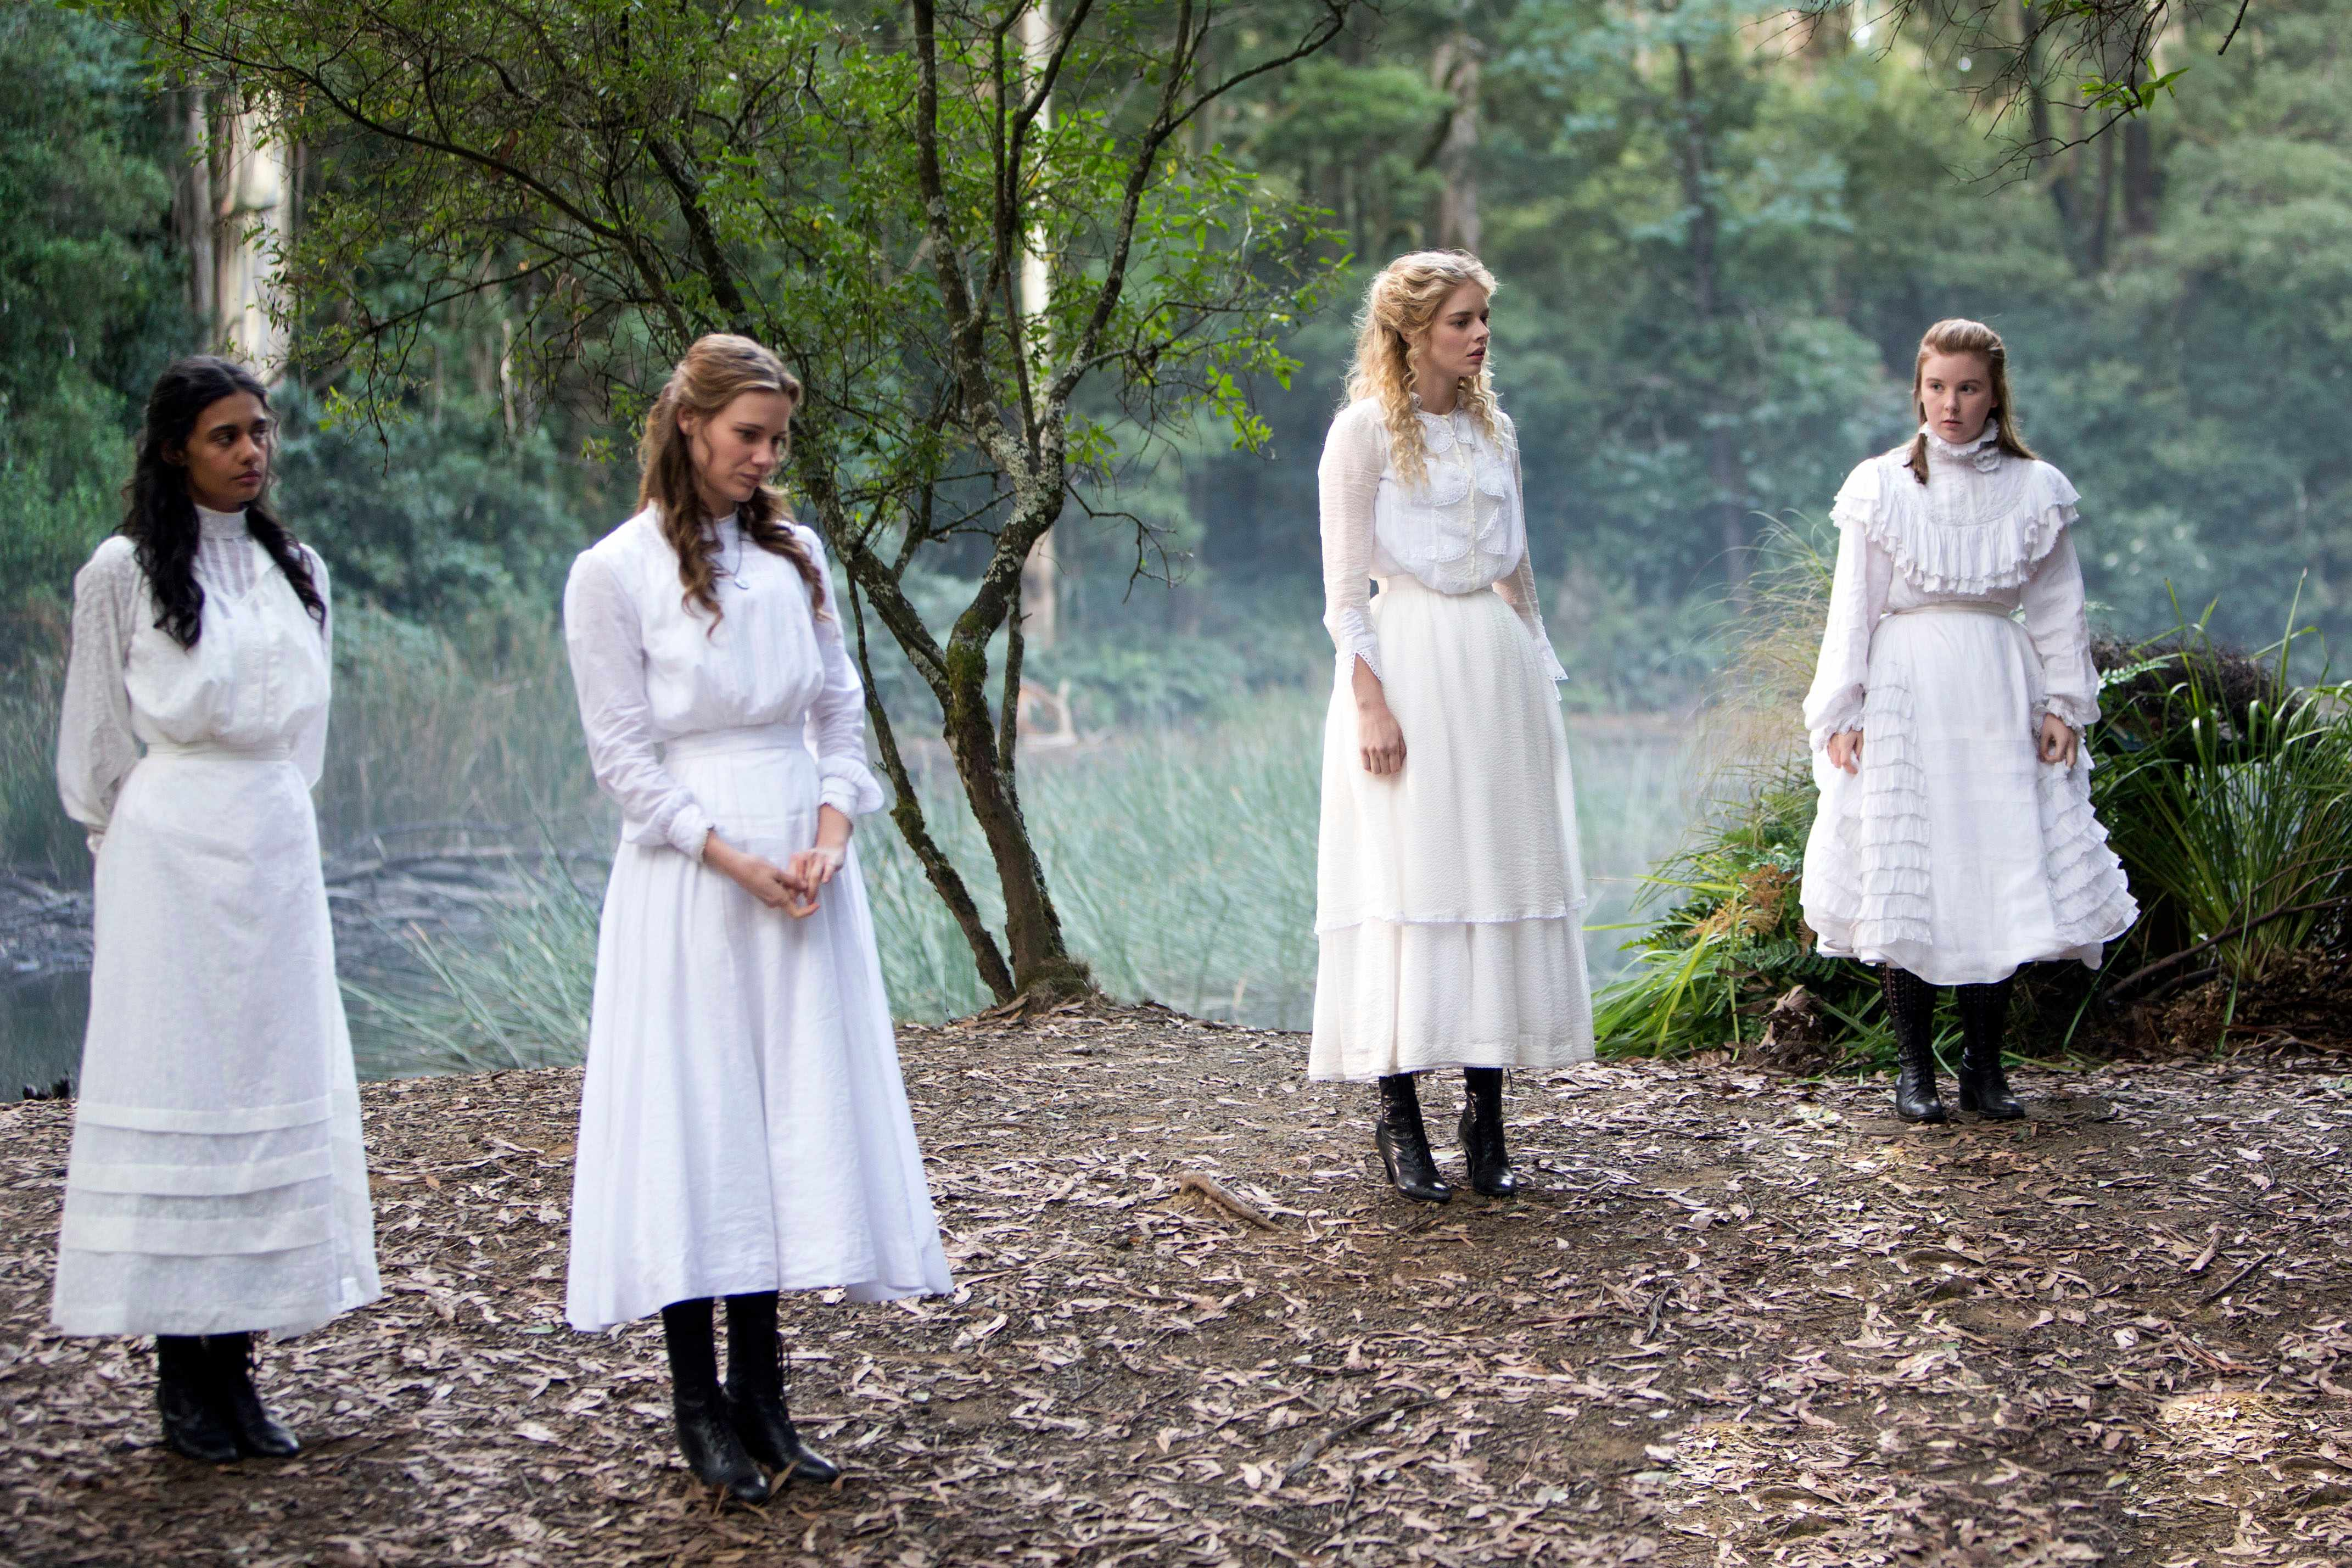 Programme Name: Picnic at Hanging Rock - TX: n/a - Episode: n/a (No. 1) - Picture Shows:  Marion Quade (MADELEINE MADDEN), Miranda Reid (LILY SULLIVAN), Irma Leopold (SAMARA WEAVING), Edith Horton (RUBY REES) - (C) Fremantle Media - Photographer: Sarah Enticknap